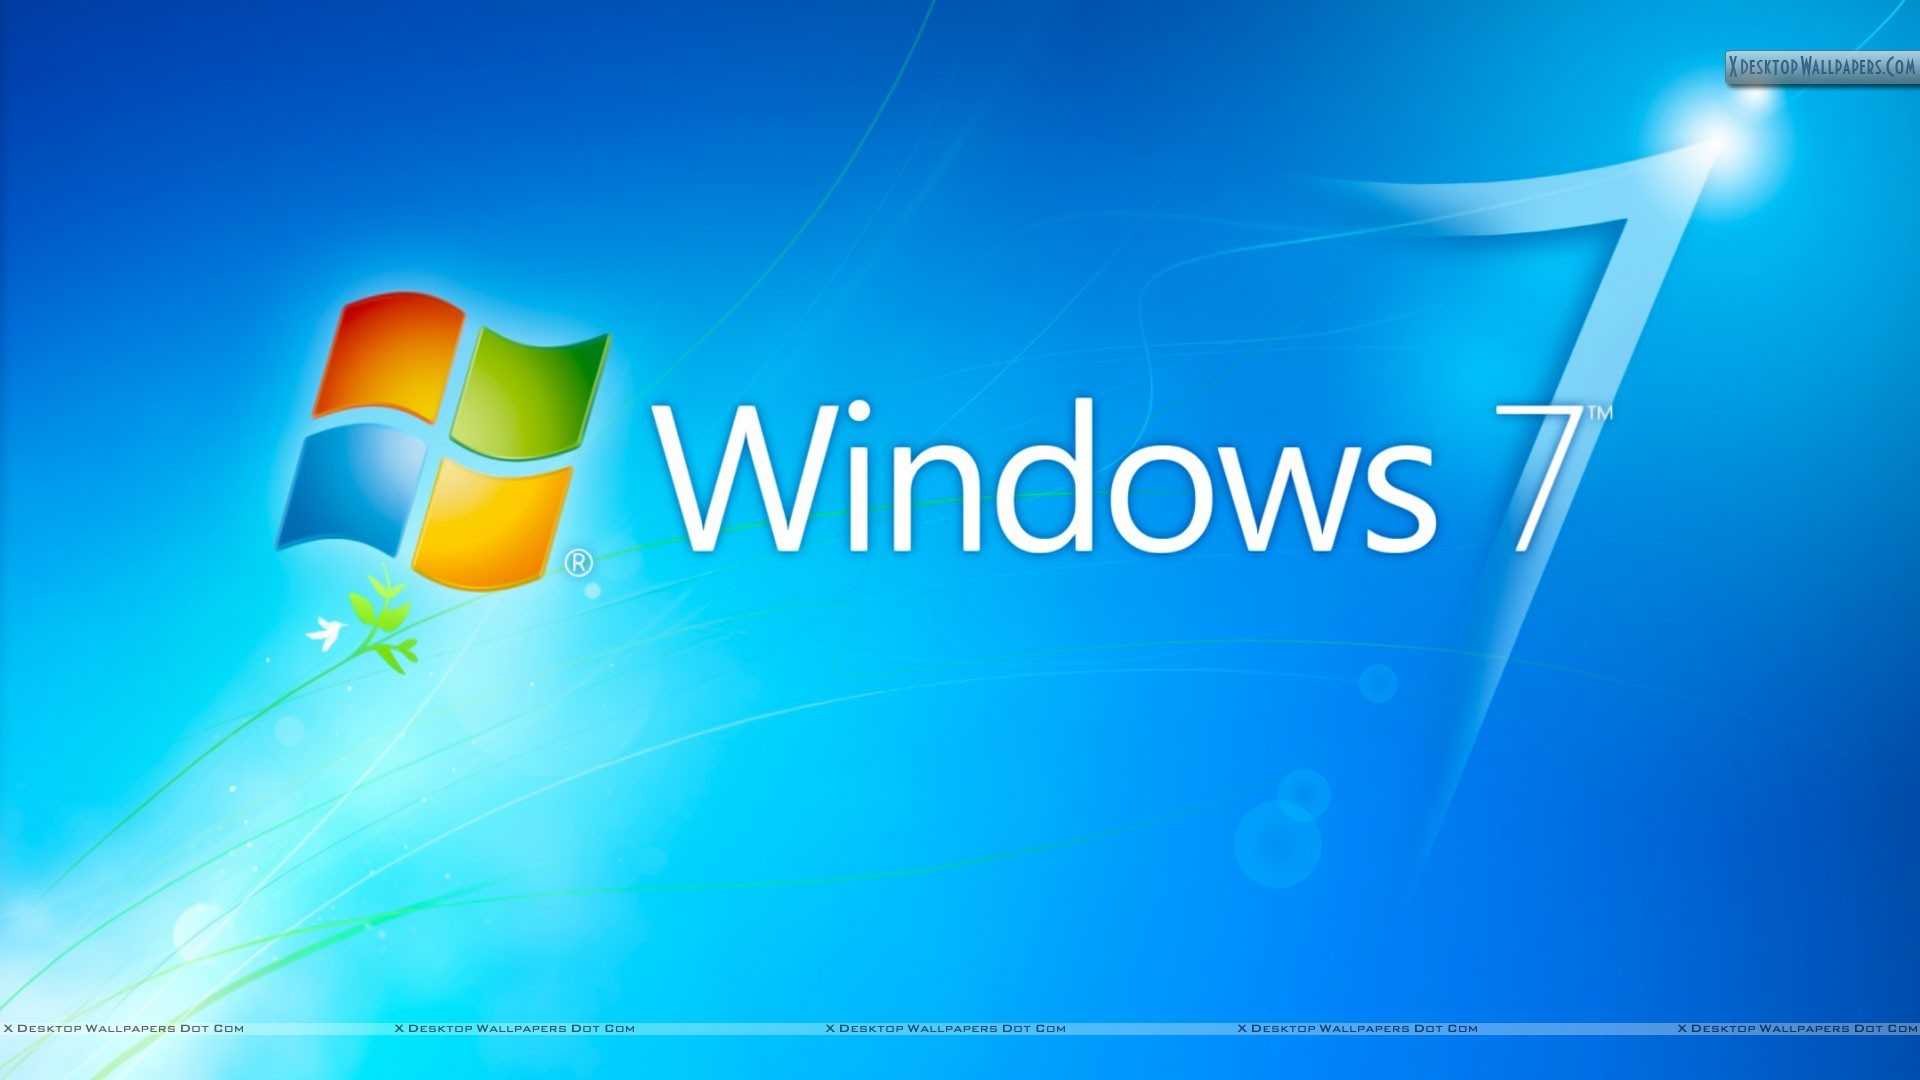 1920x1080 Windows 7 hd blue background with logo wallpaper